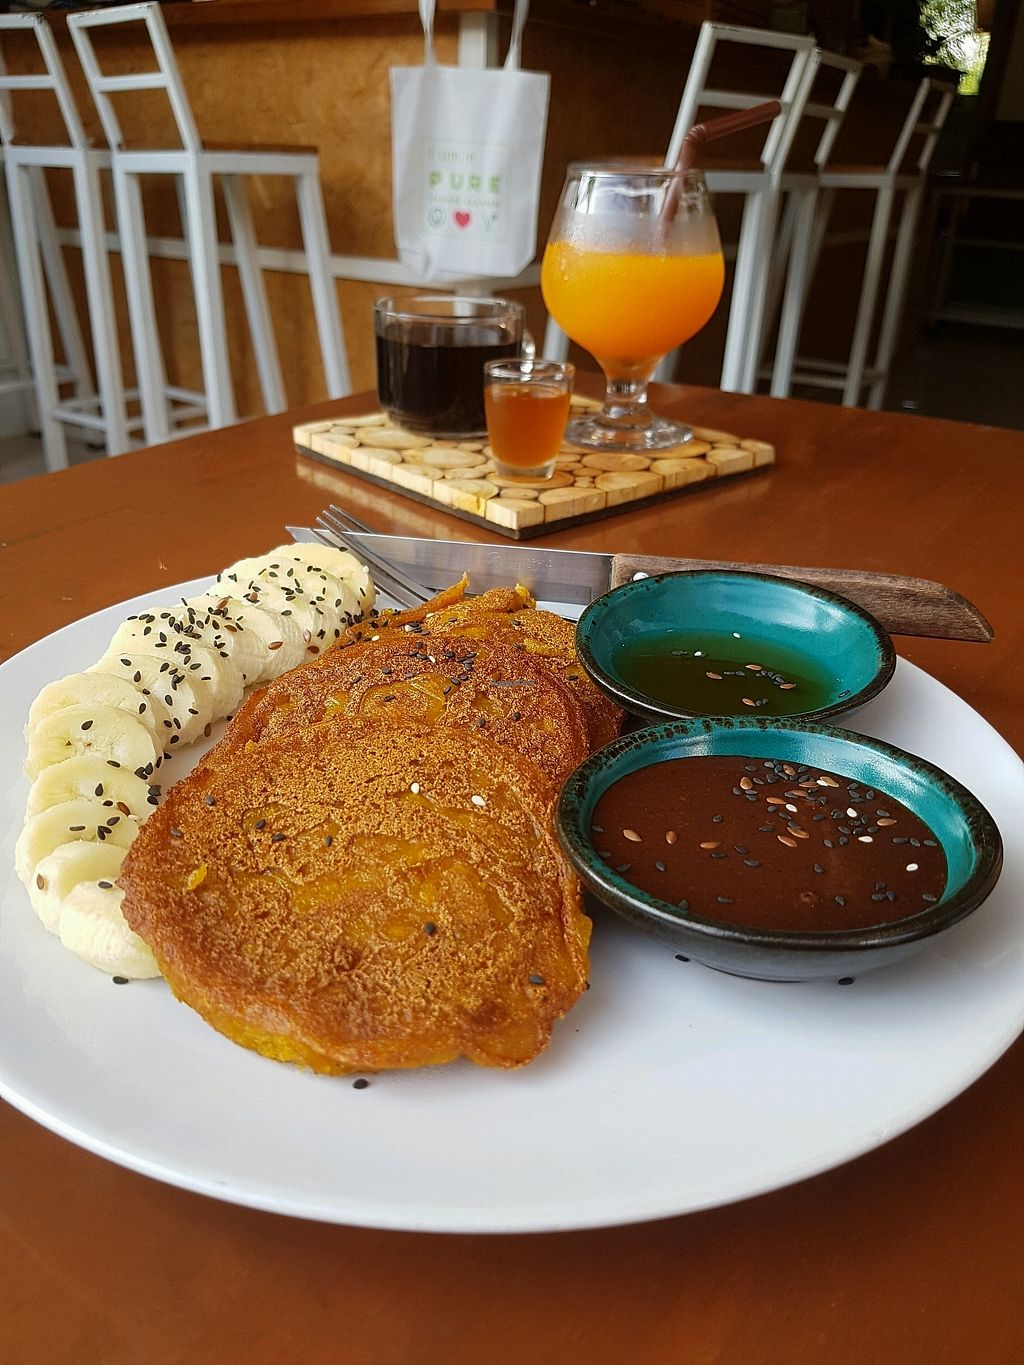 """Photo of Pure Vegan Heaven  by <a href=""""/members/profile/vegatleticas"""">vegatleticas</a> <br/>Sweet potato pancakes with banana and vegan nutella ? <br/> February 26, 2018  - <a href='/contact/abuse/image/72425/363925'>Report</a>"""